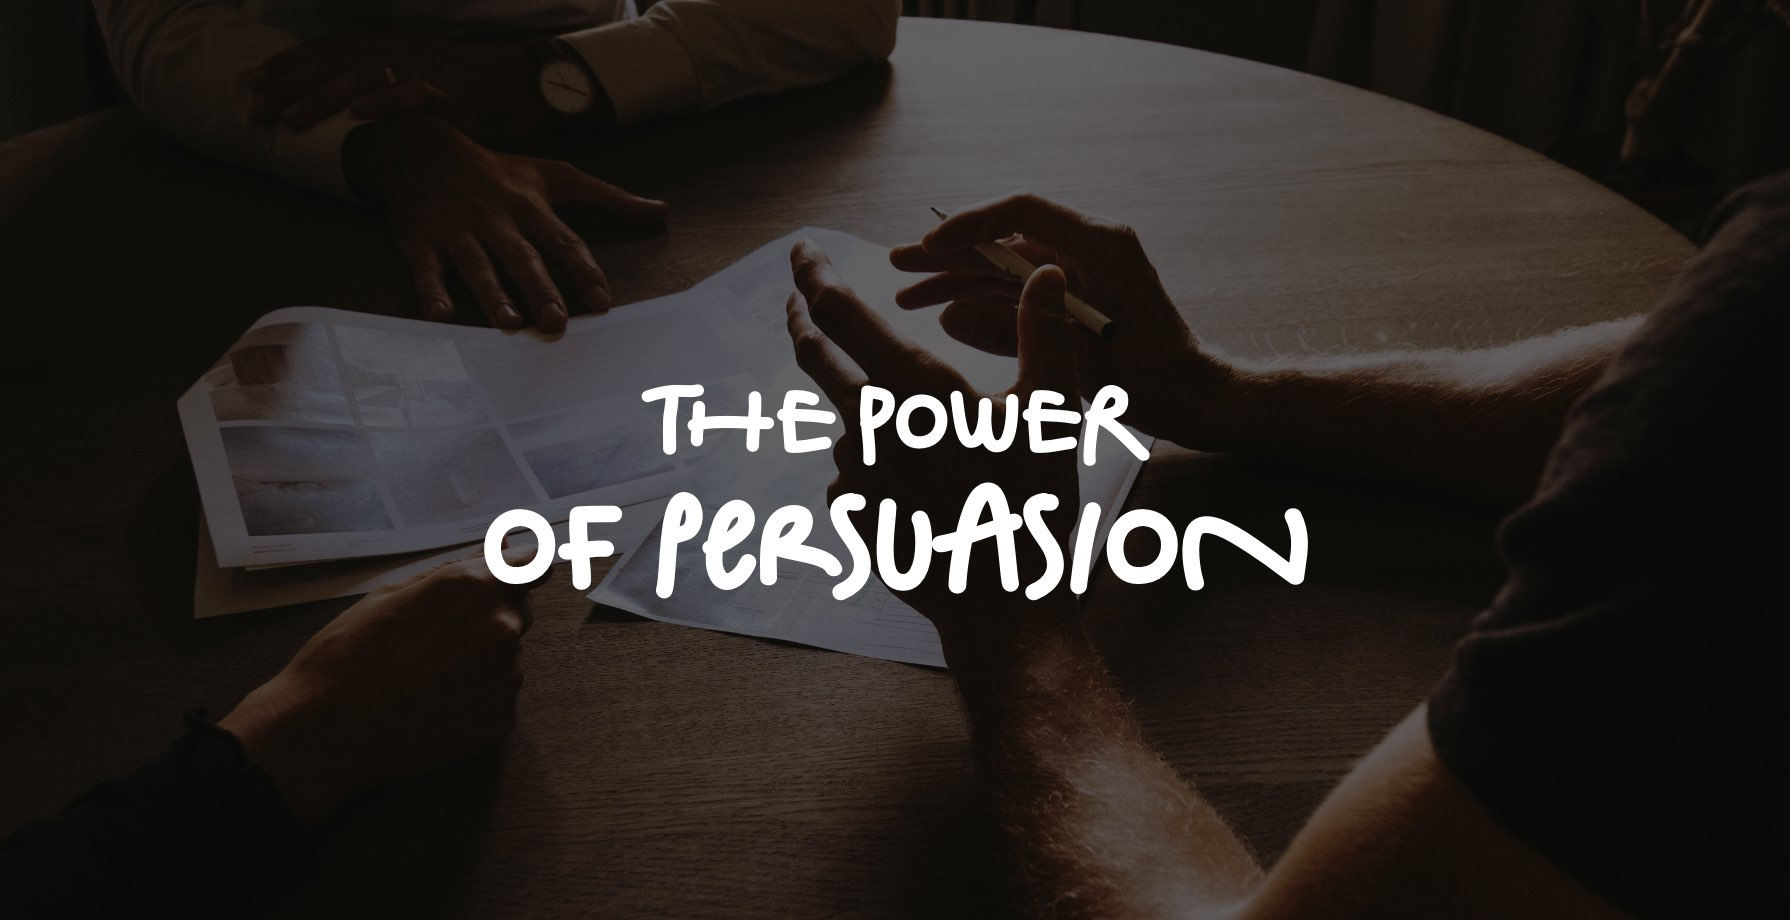 The Power of Persuasion 3